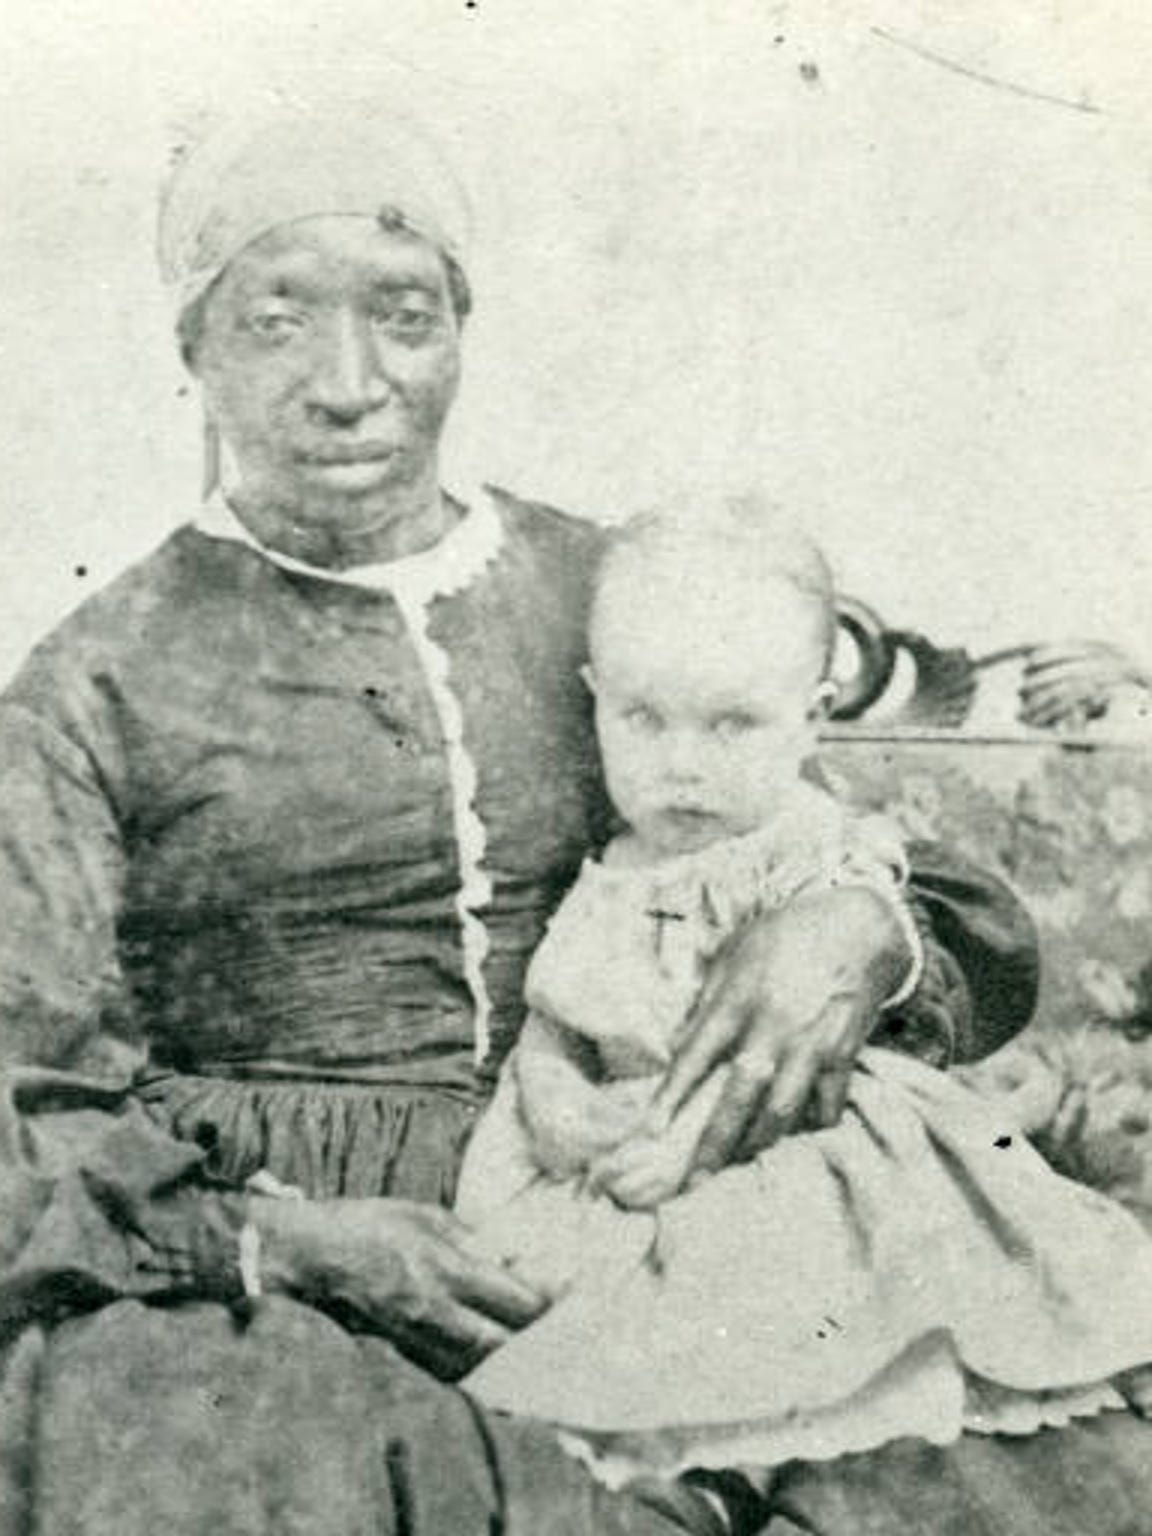 Jints, a slave owned by James Anderson, holds Hanna Stockley in this picture taken some time between 1860 and 1861. It is the only known photograph of a Delaware slave.